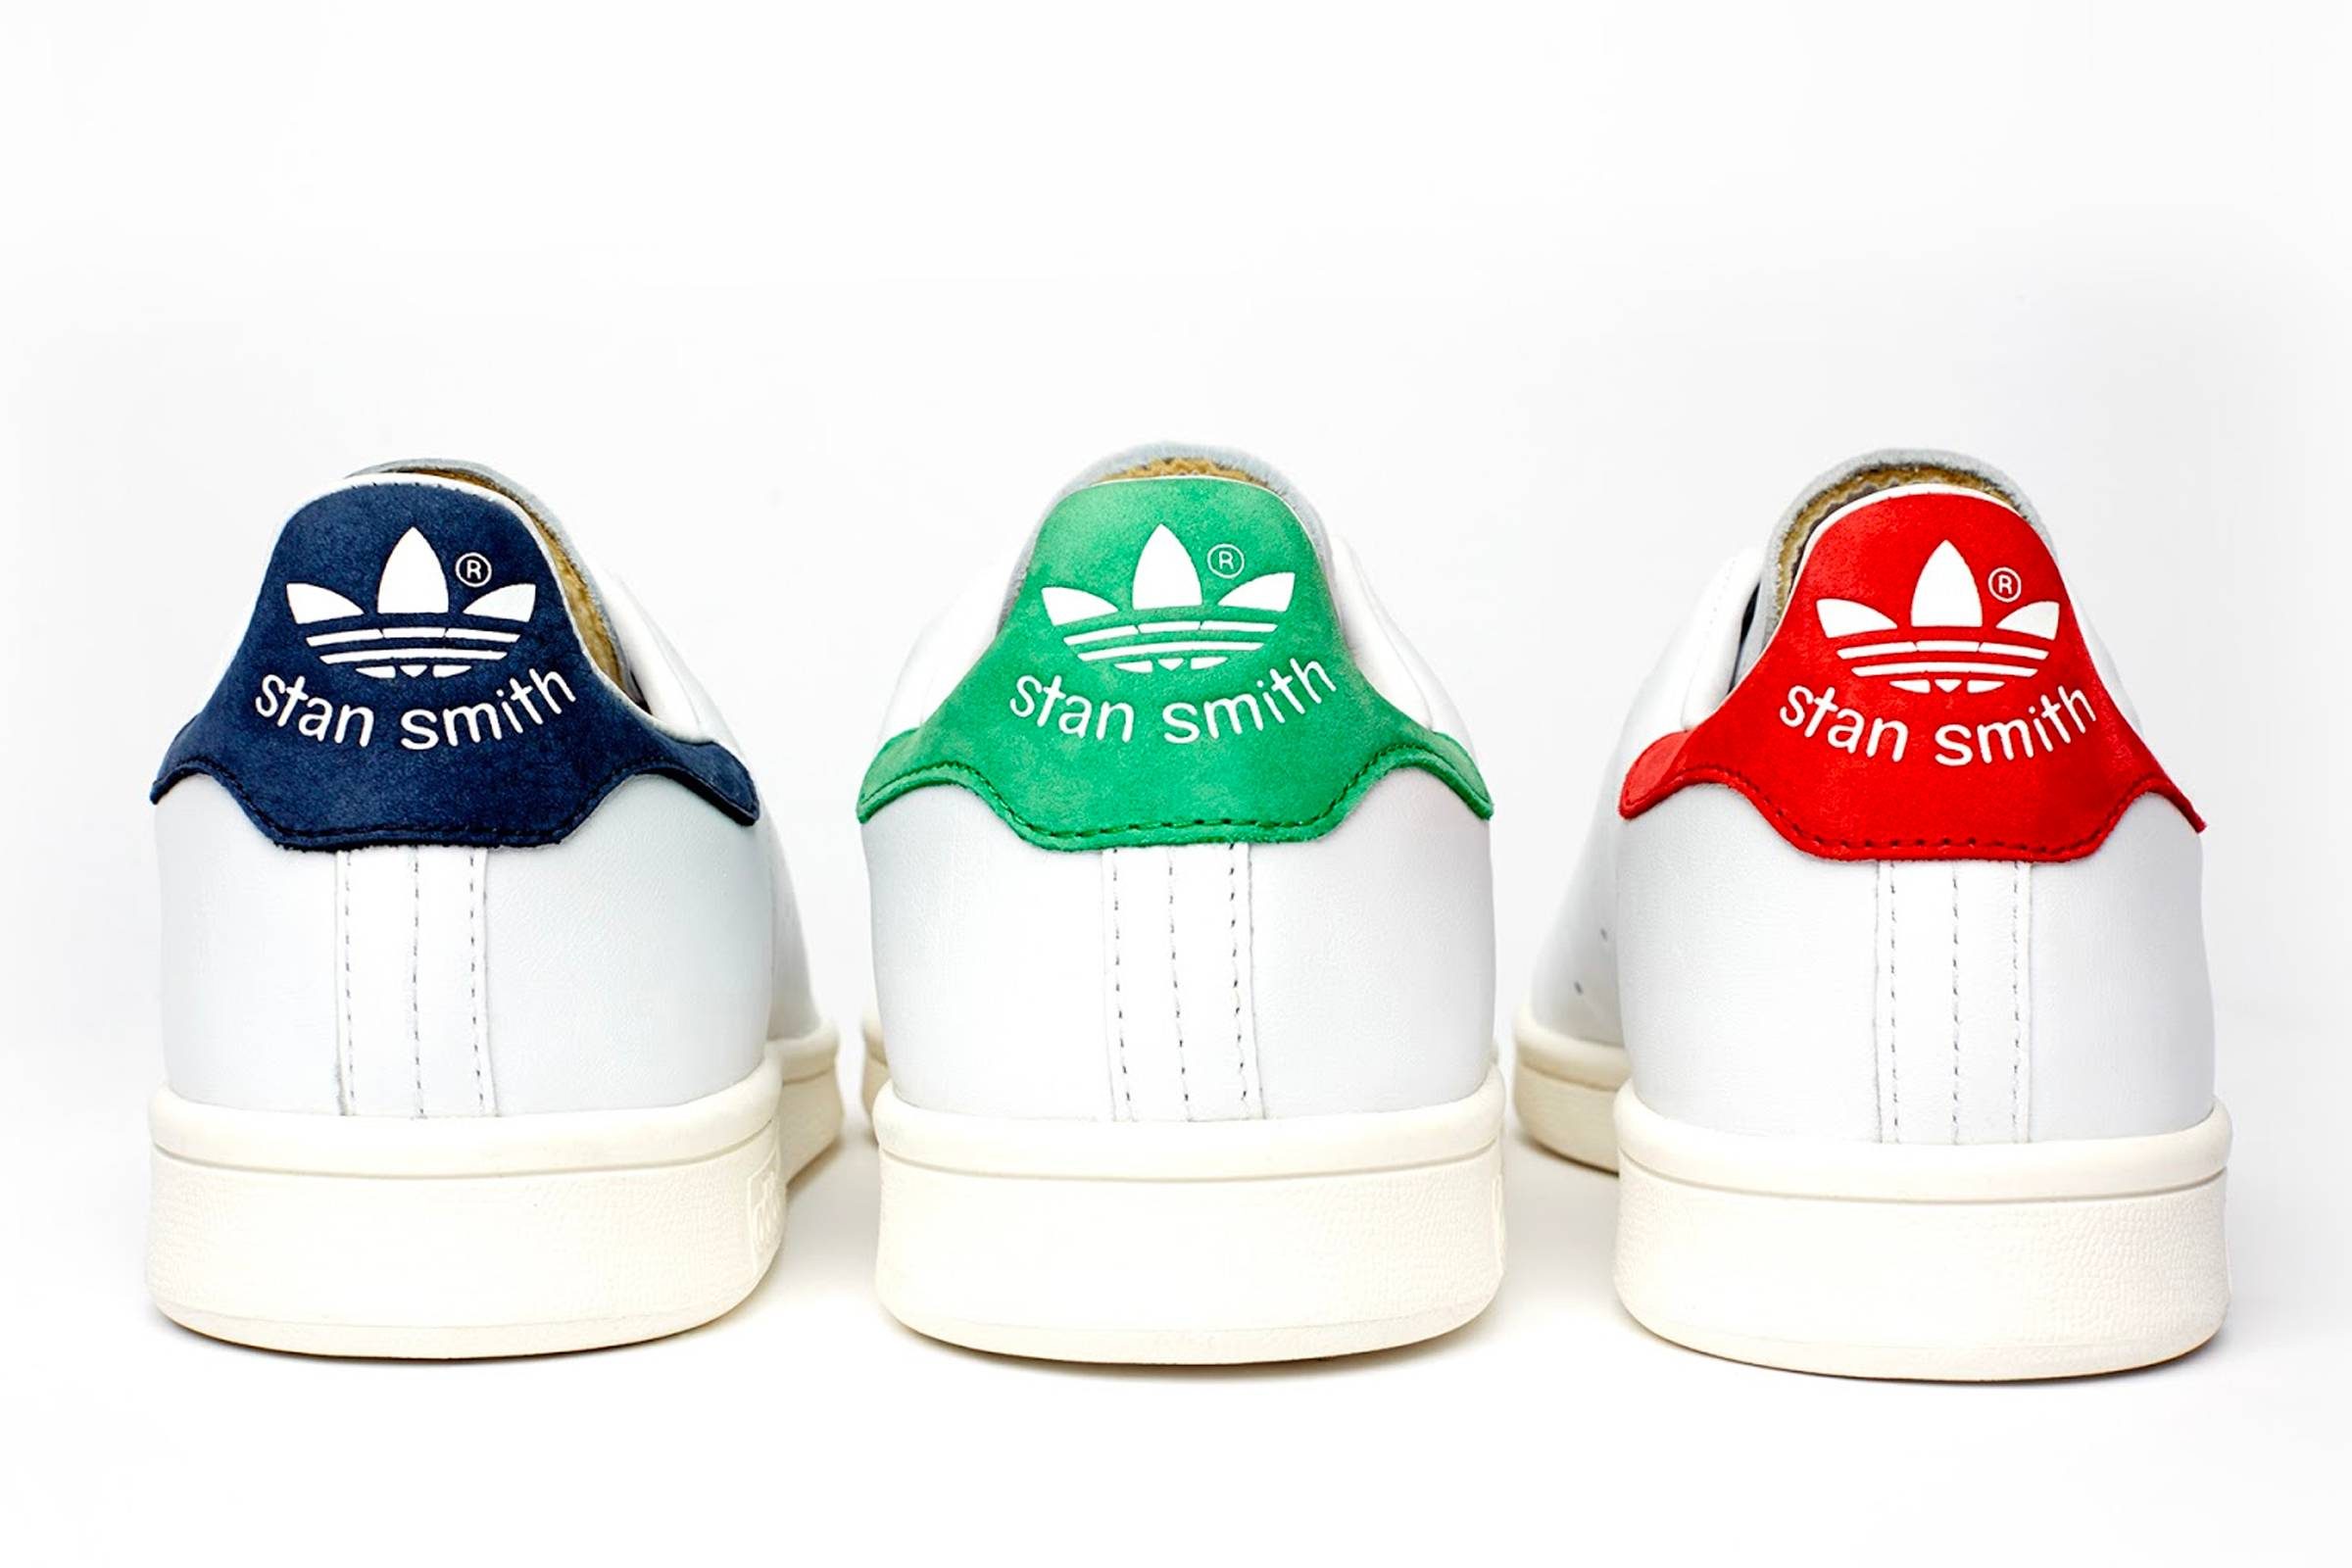 More ManHistory Just A Than Adidas Of The Stan SmithGrailed lJK1TcF3